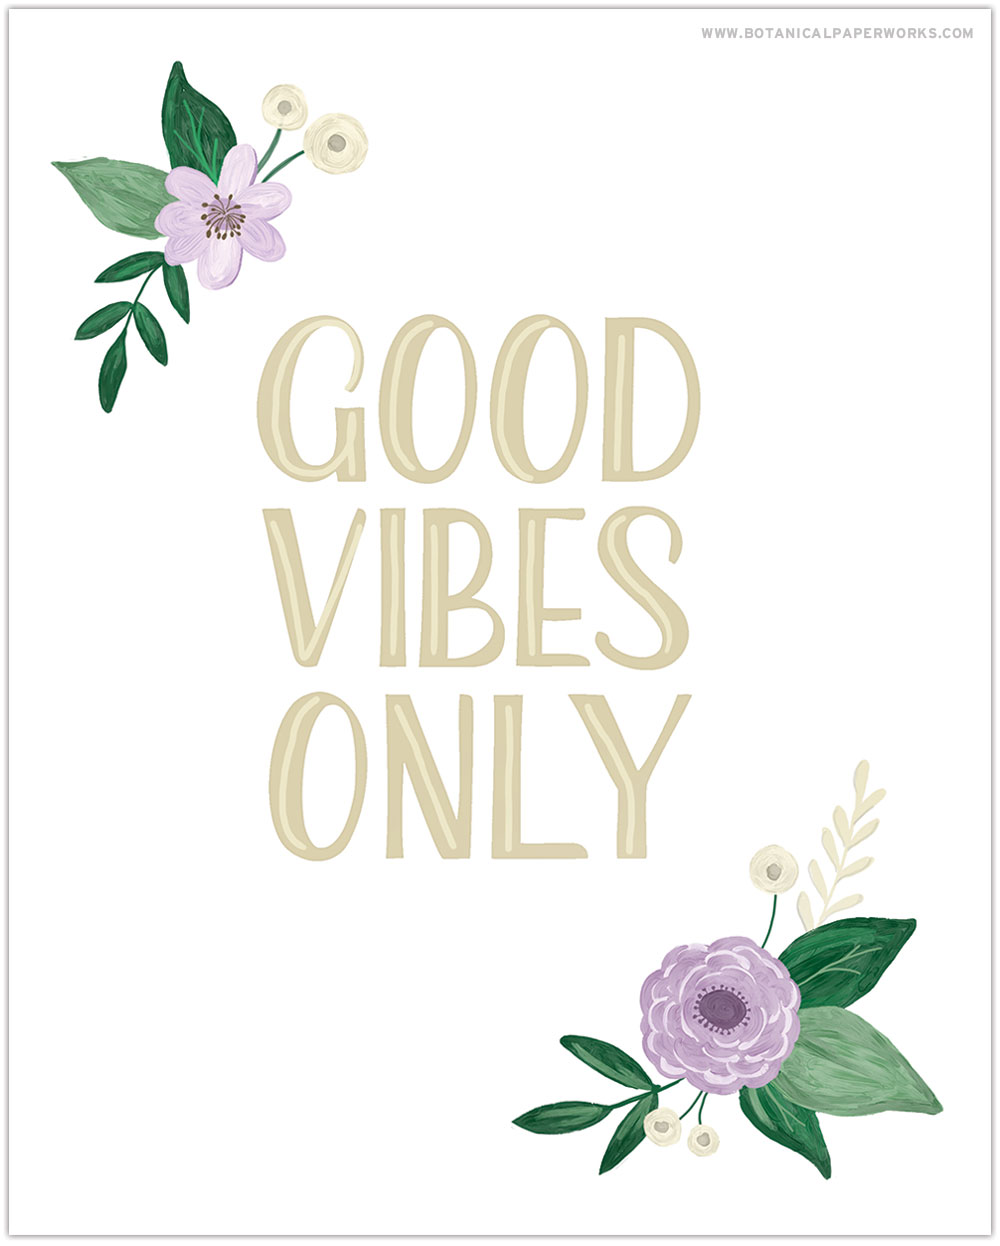 Download and print this free Good Vibes Only Spring Wall Art to decorate your home for the season.